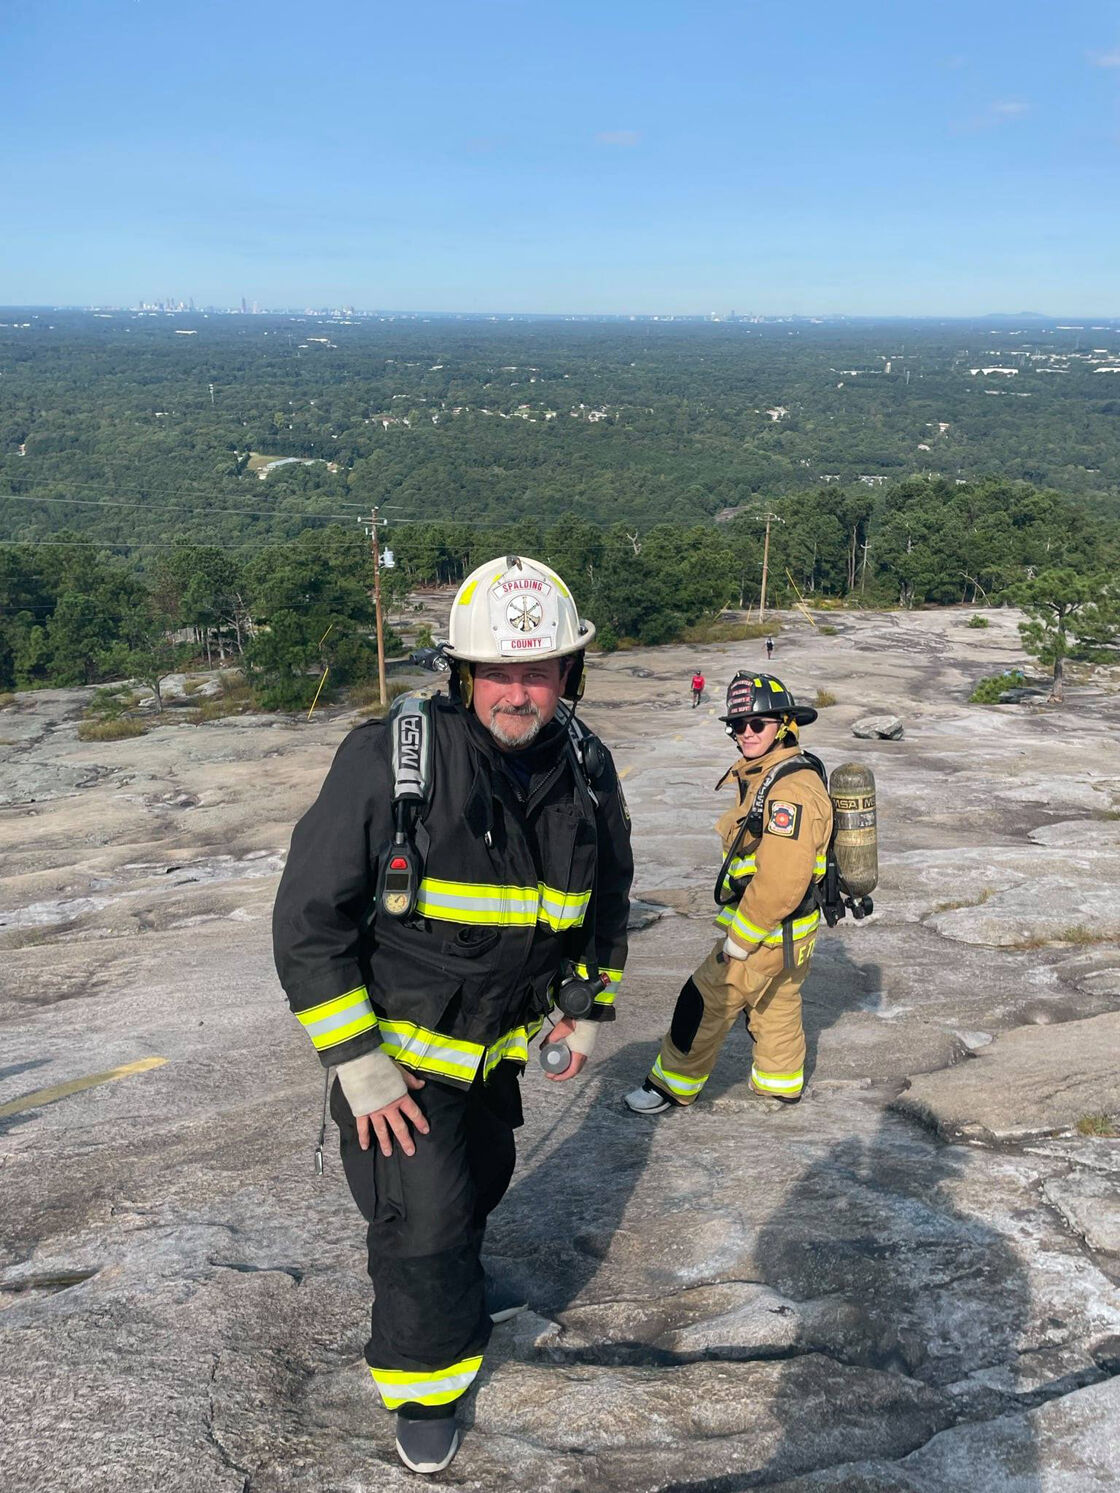 Firefighters climb Stone Mountain to commemorate 9/11